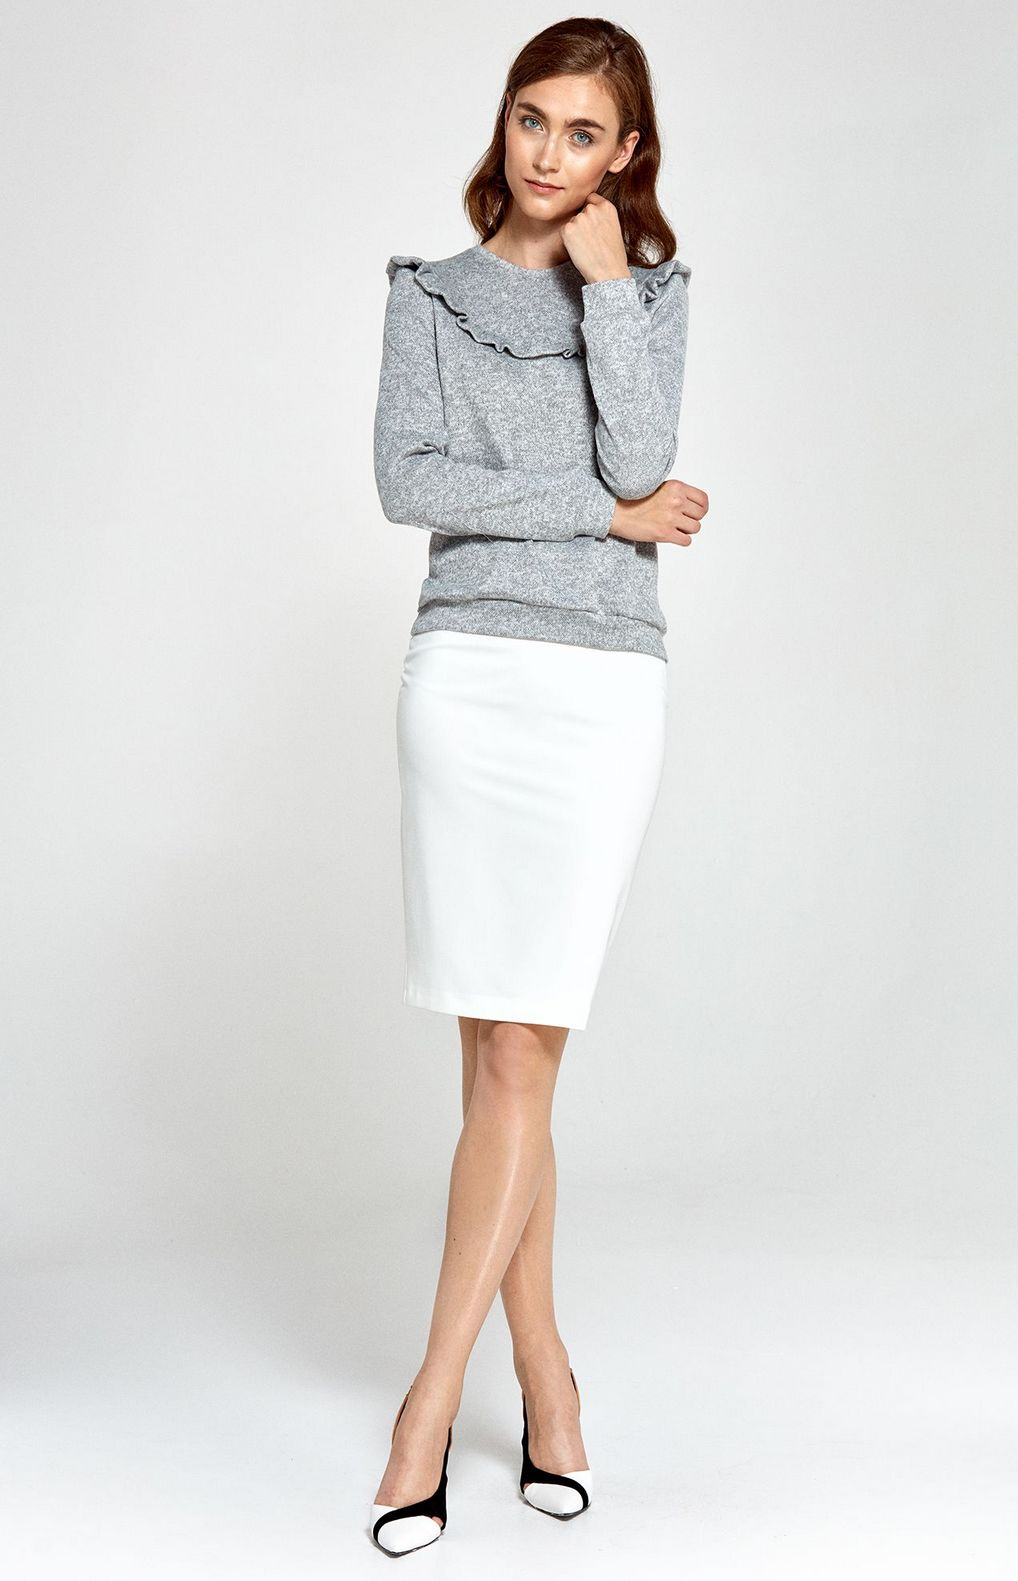 white pencil skirt nip34e idresstocode online boutique. Black Bedroom Furniture Sets. Home Design Ideas